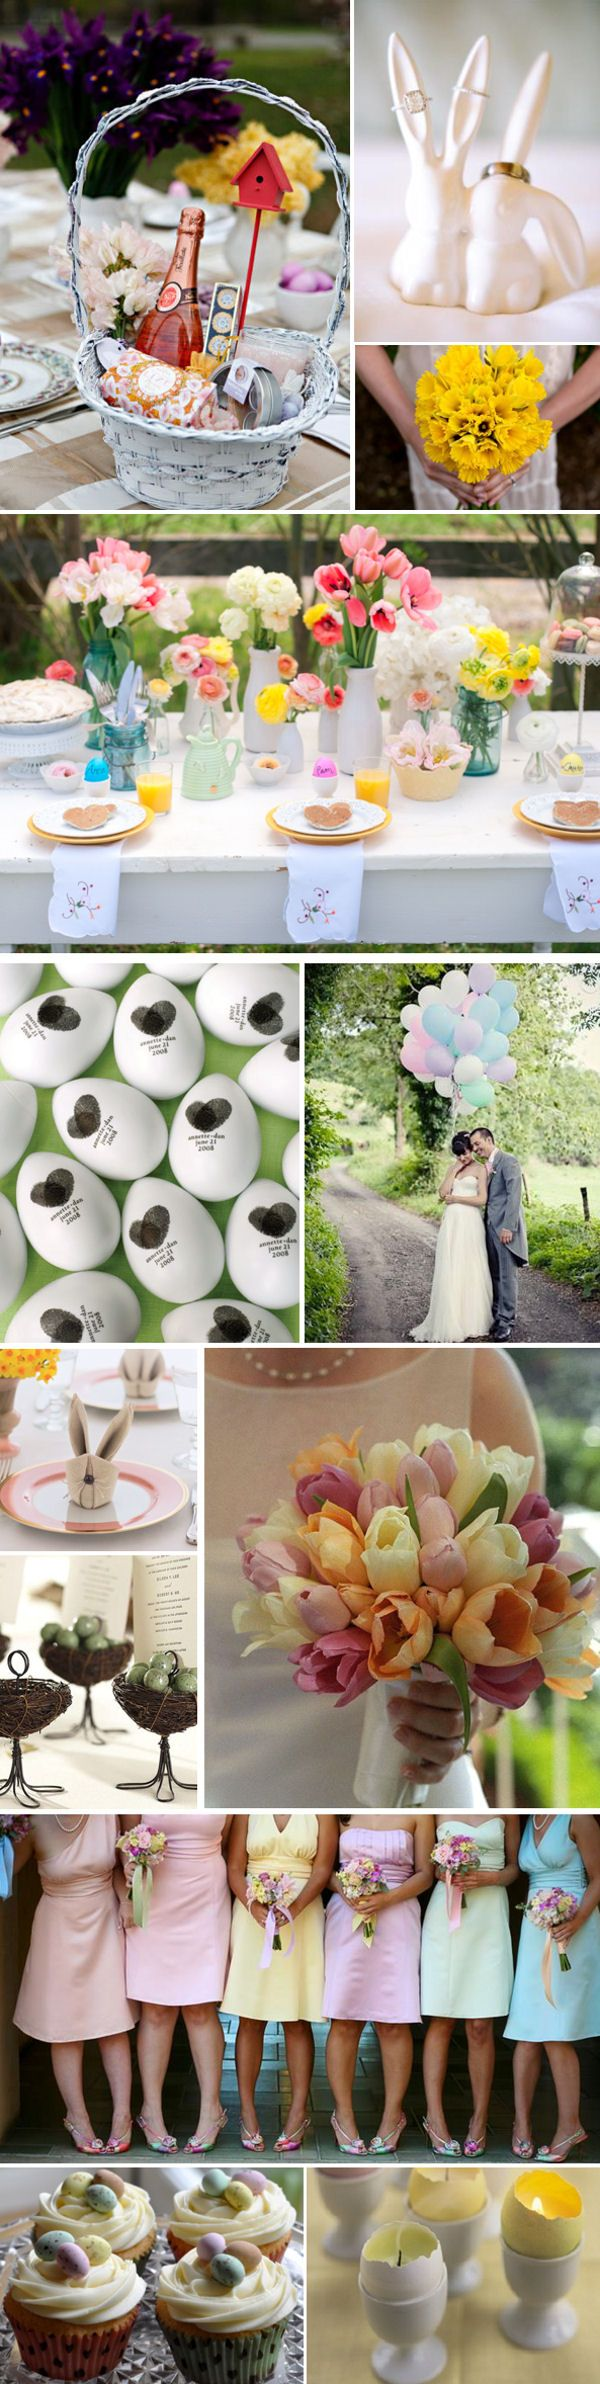 Easter Wedding Inspiration Board-ring holder from Urban Outfitters!